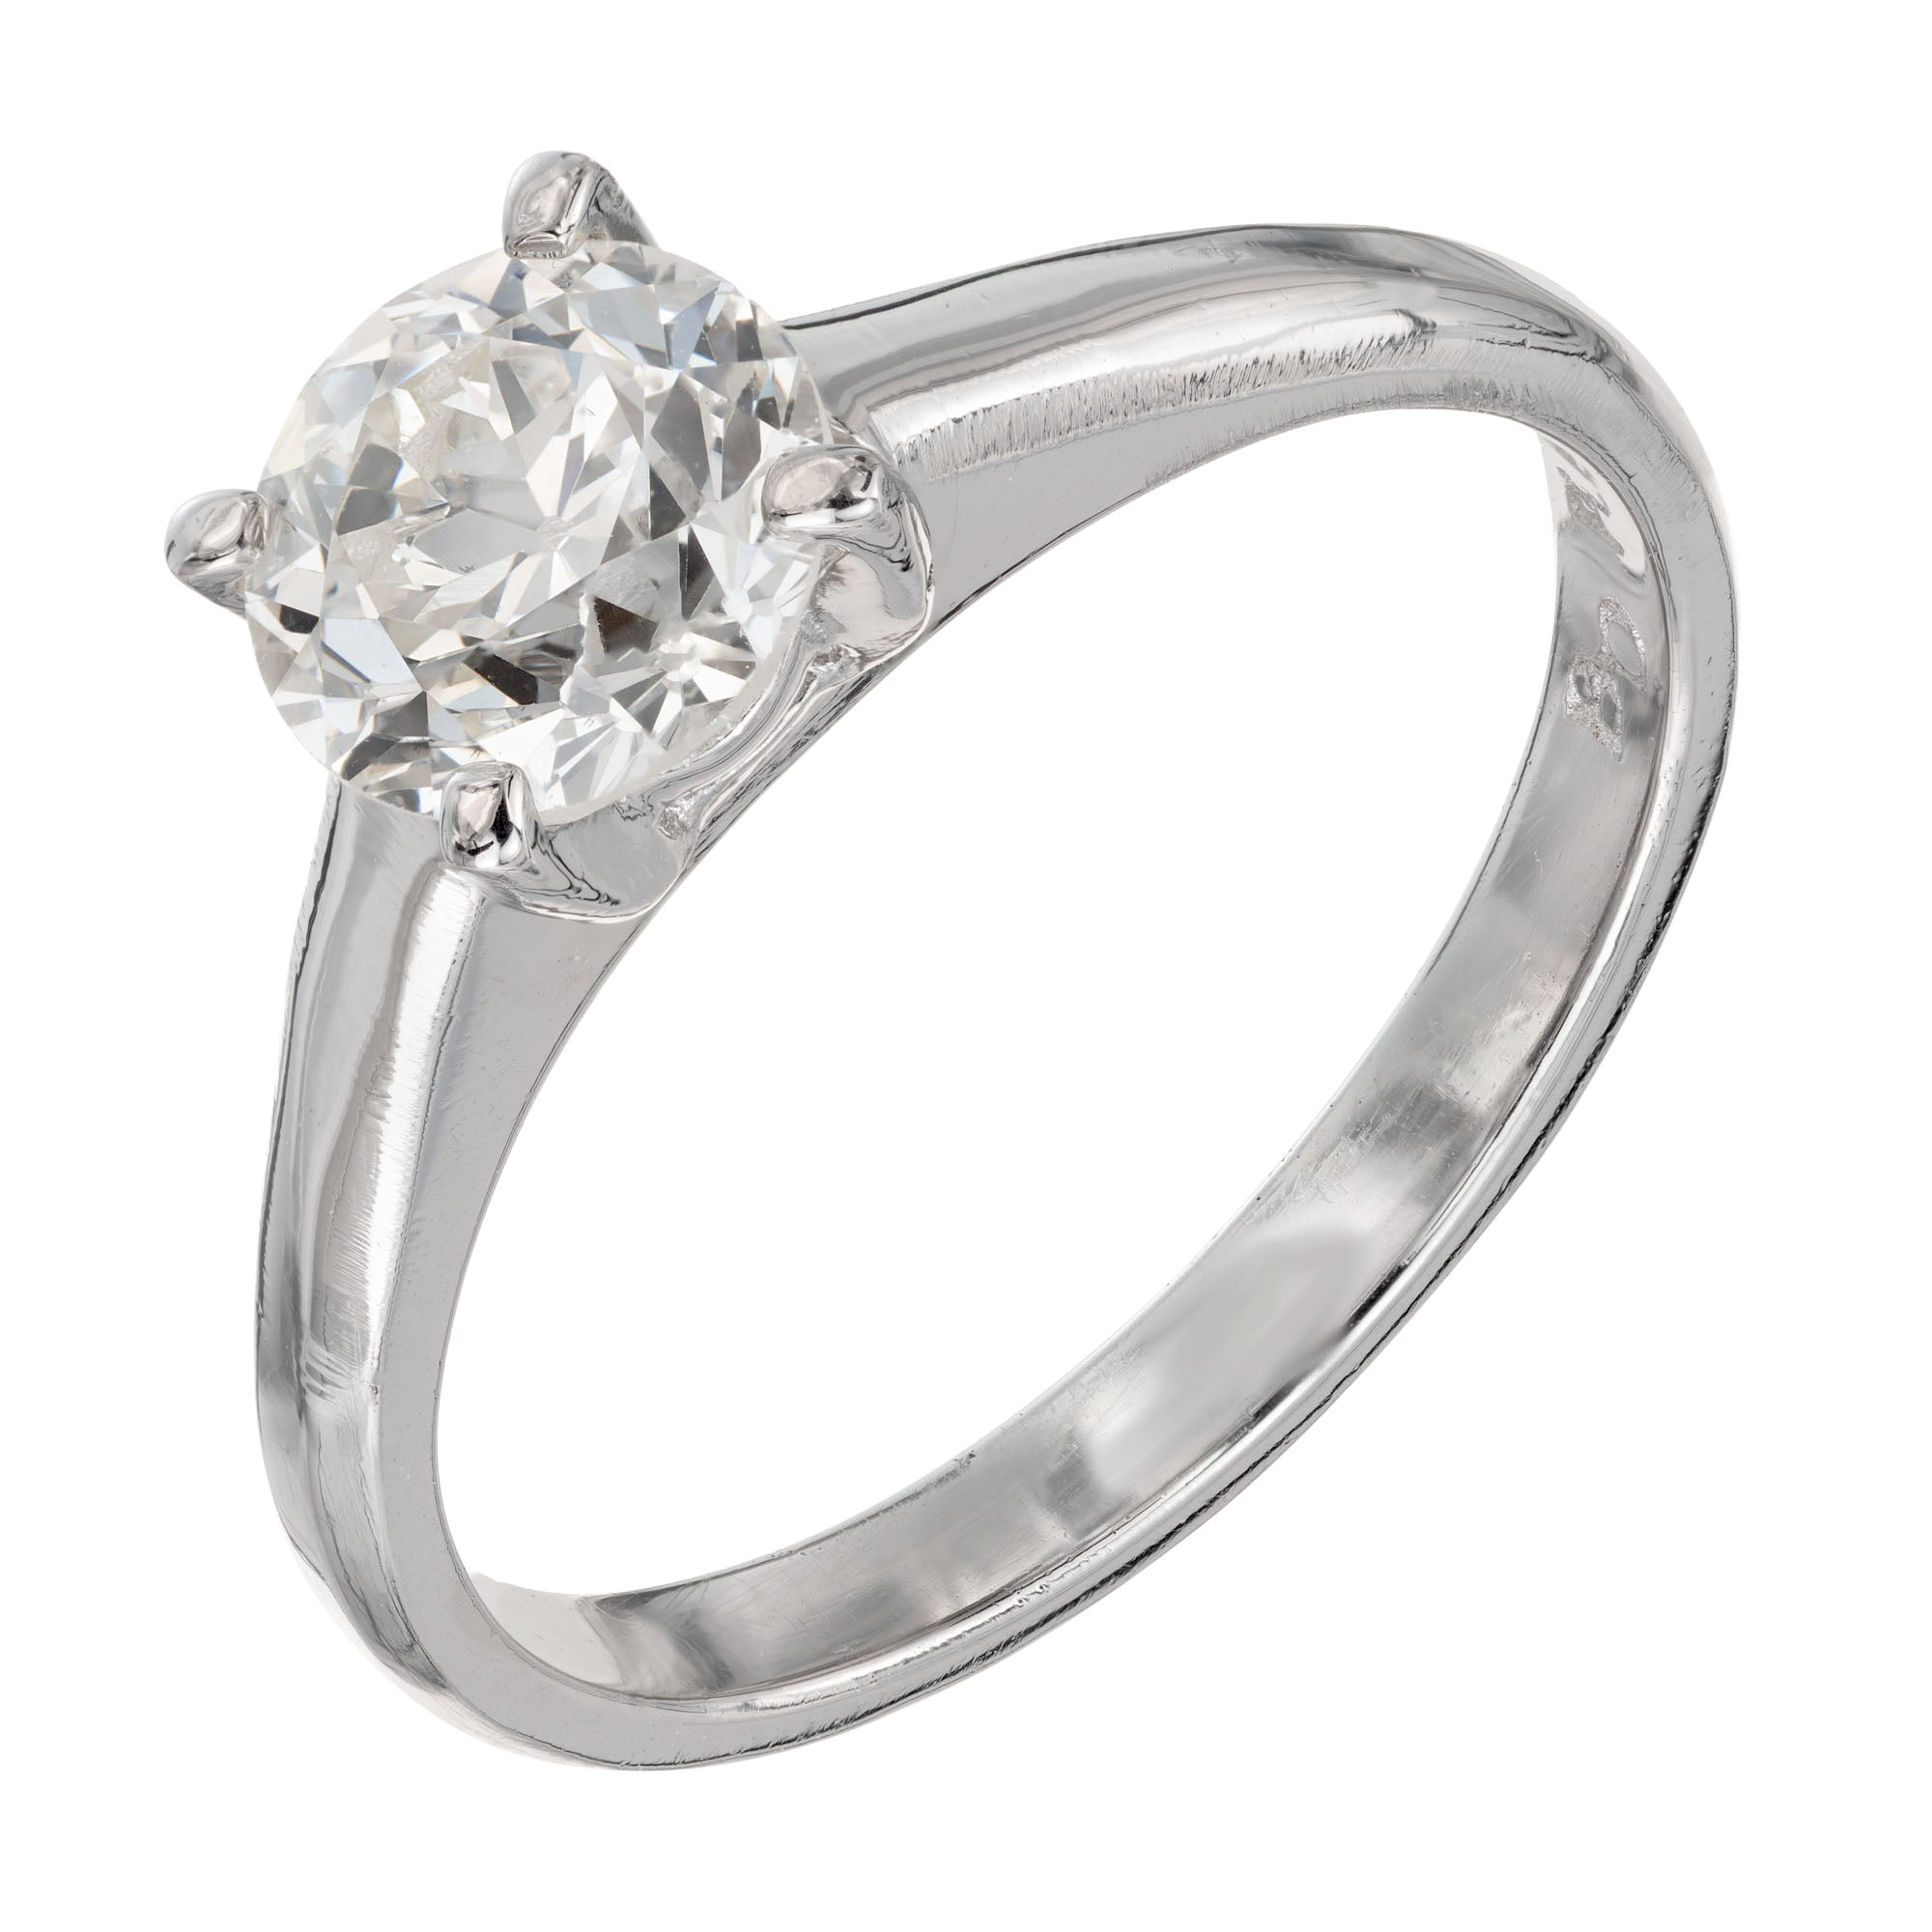 GIA Certified .99 Carat Diamond Platinum Solitaire Engagement Ring